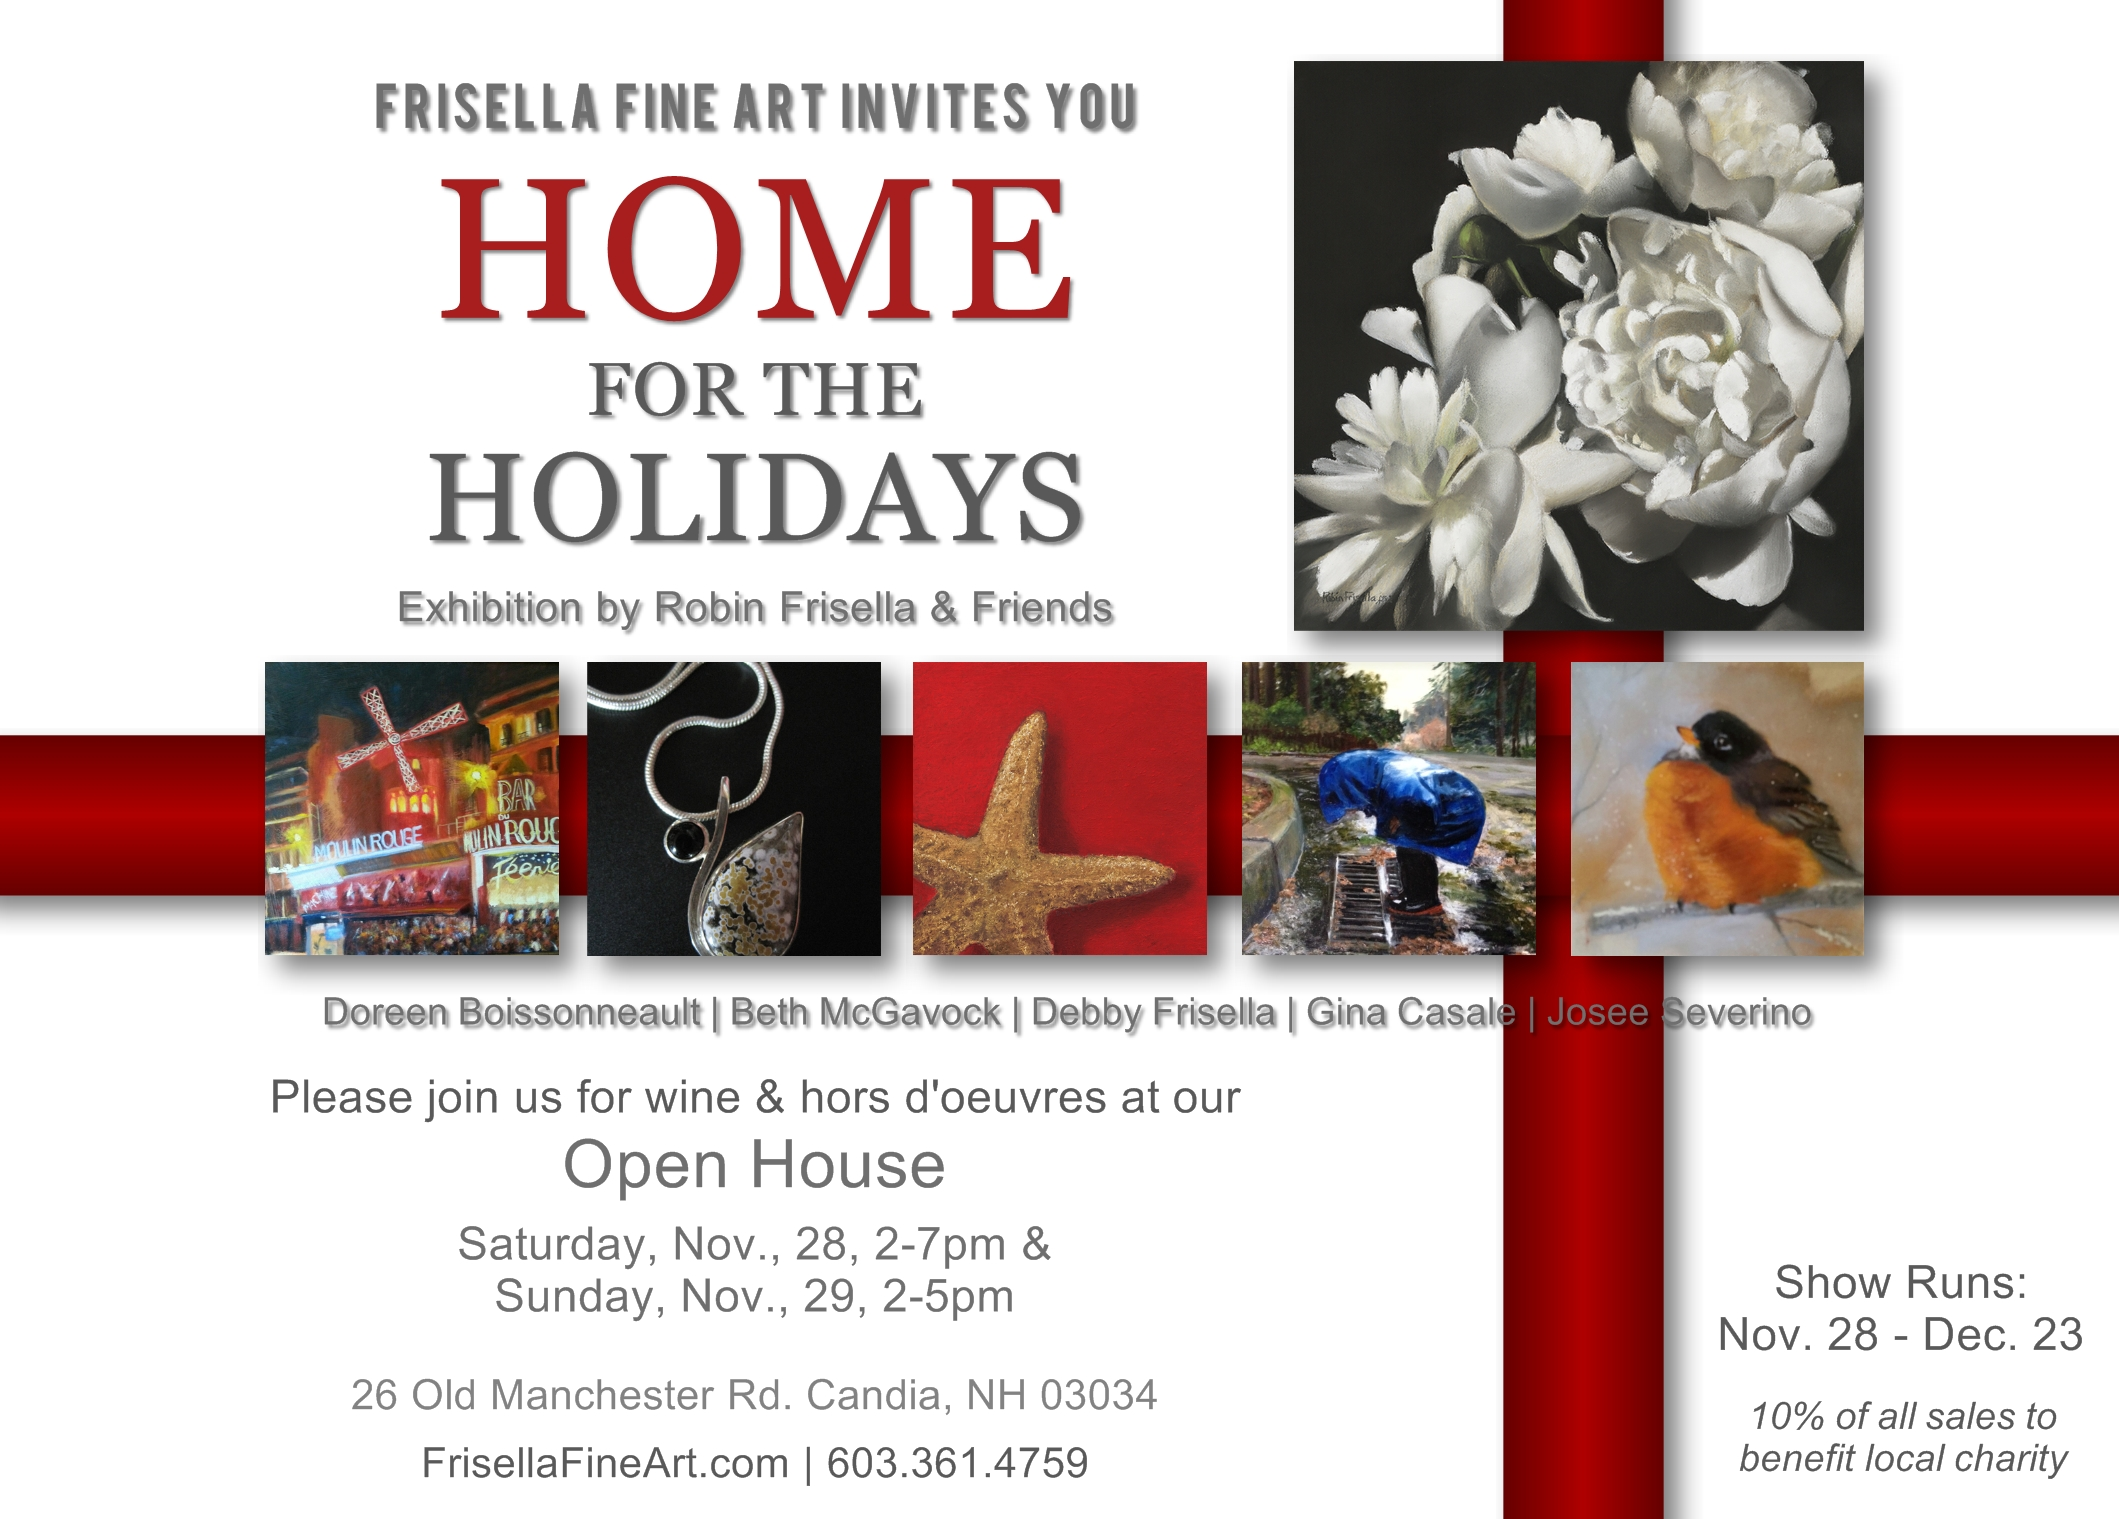 2015 Home for the Holidays Invitation.jpg